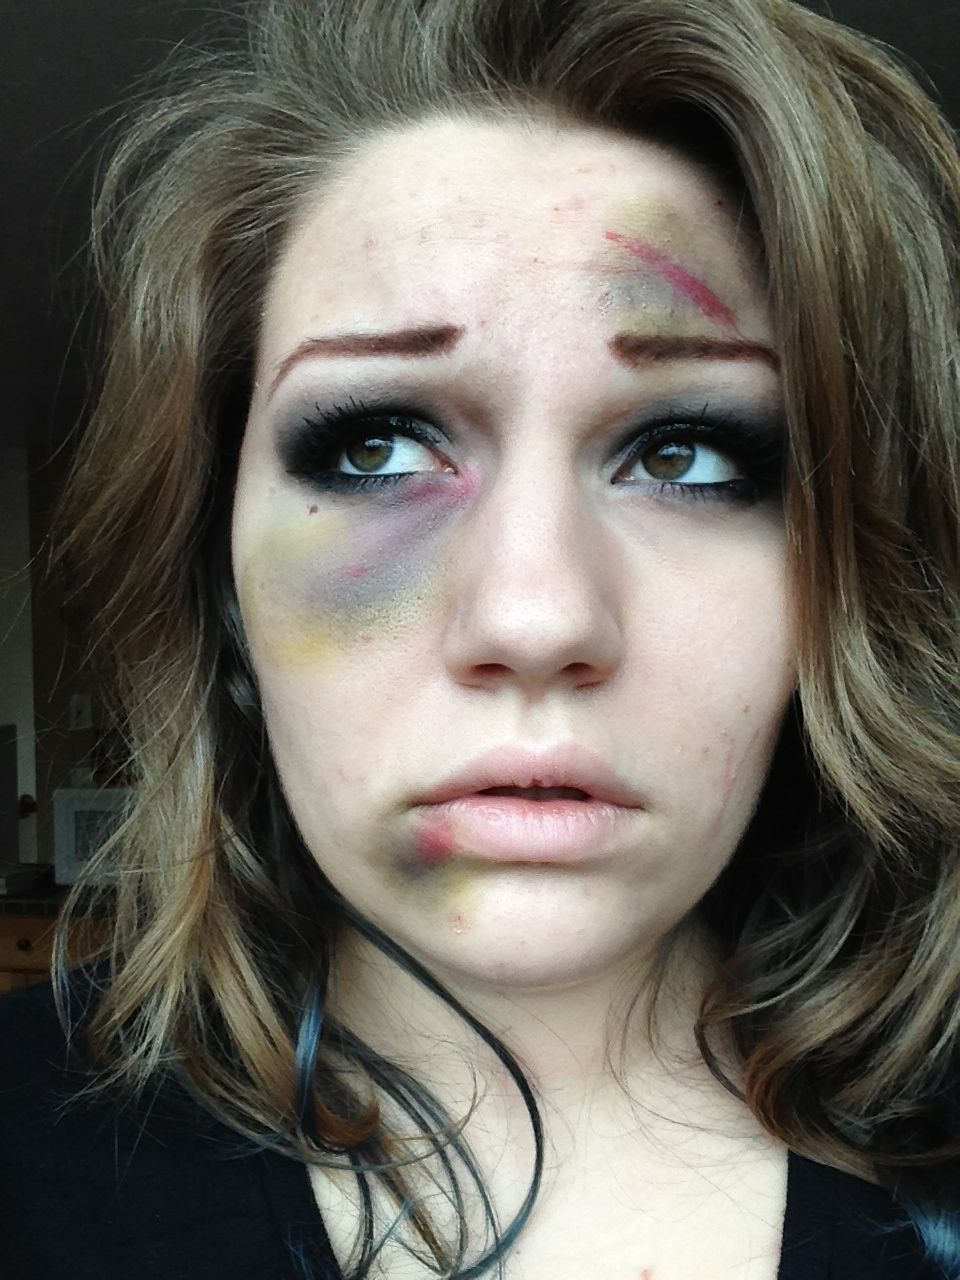 Beat up fake bruises makeup gonna have to figure out what stage